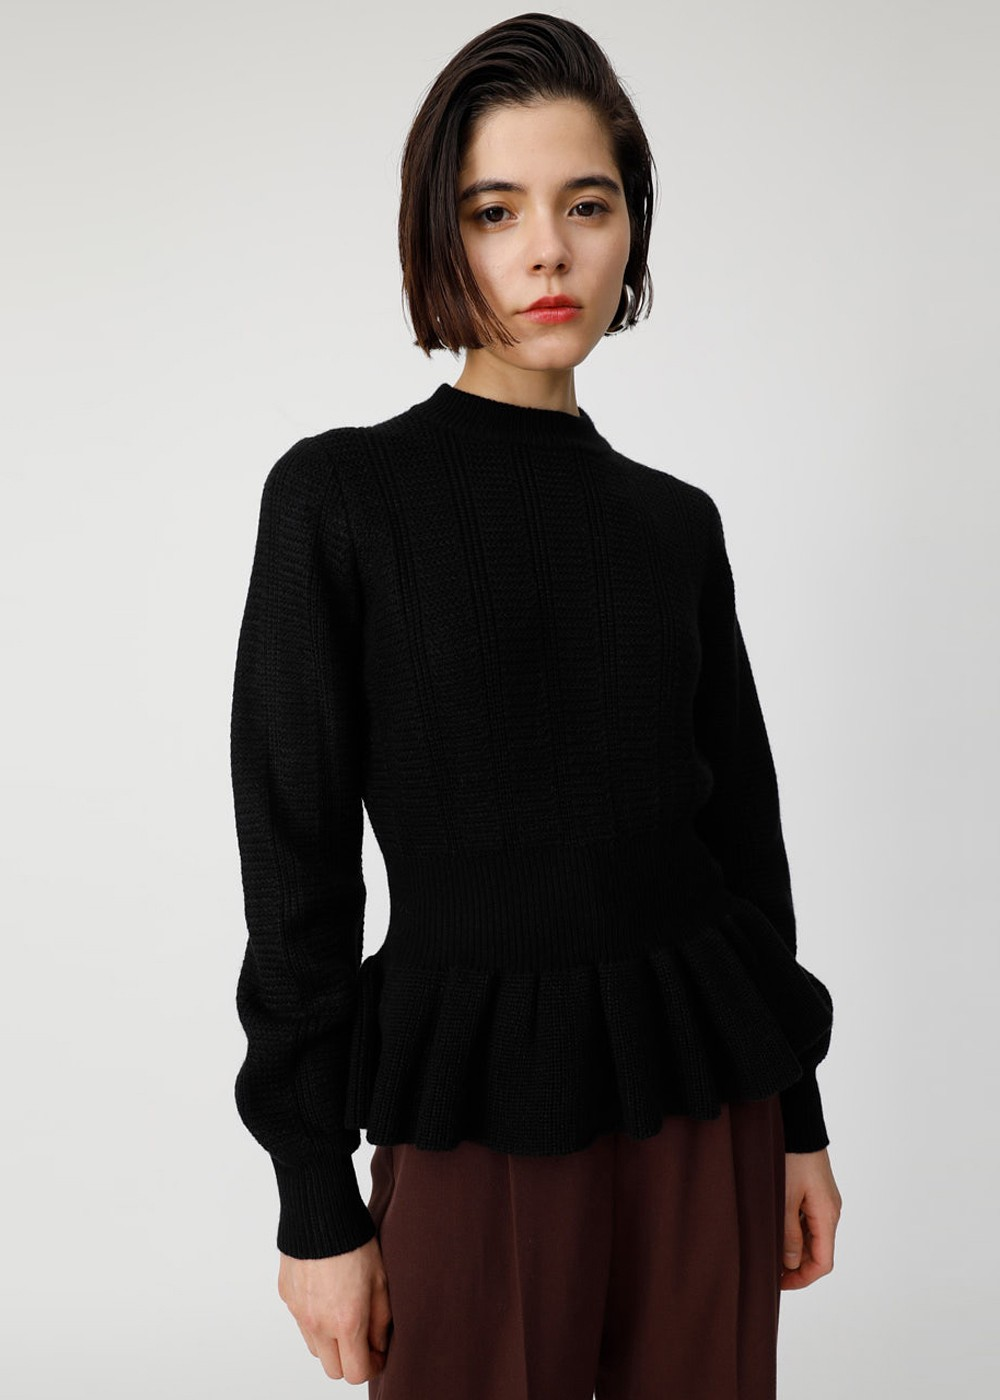 【最大60%OFF】BROAD STITCH PEPLUM KNIT|BLK|ニット|MOUSSY